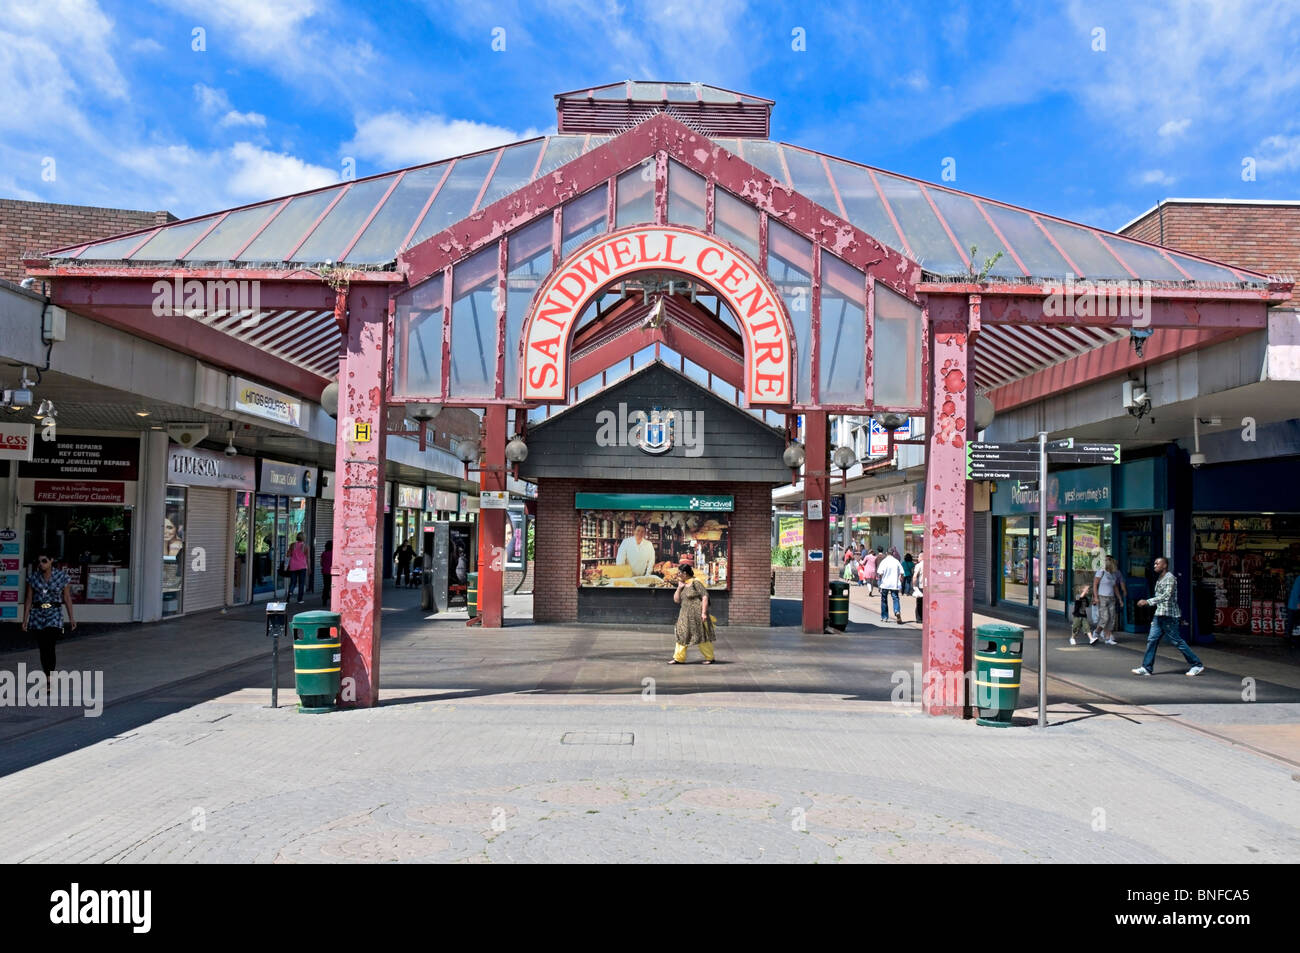 Sandwell Shopping Centre West Bromwich - Stock Image